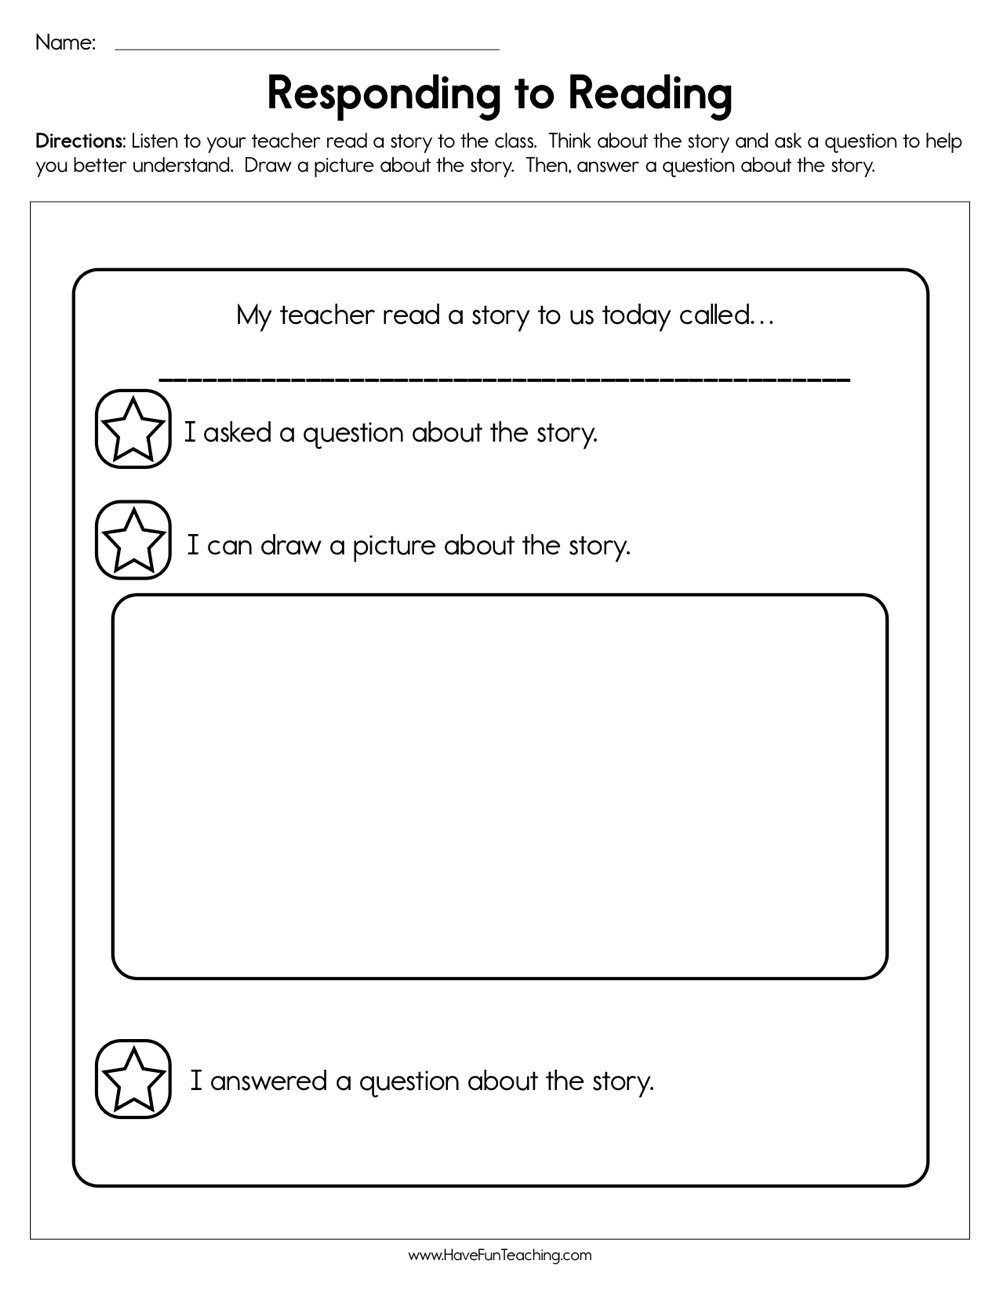 Read and Respond Worksheets Responding to Reading Worksheet